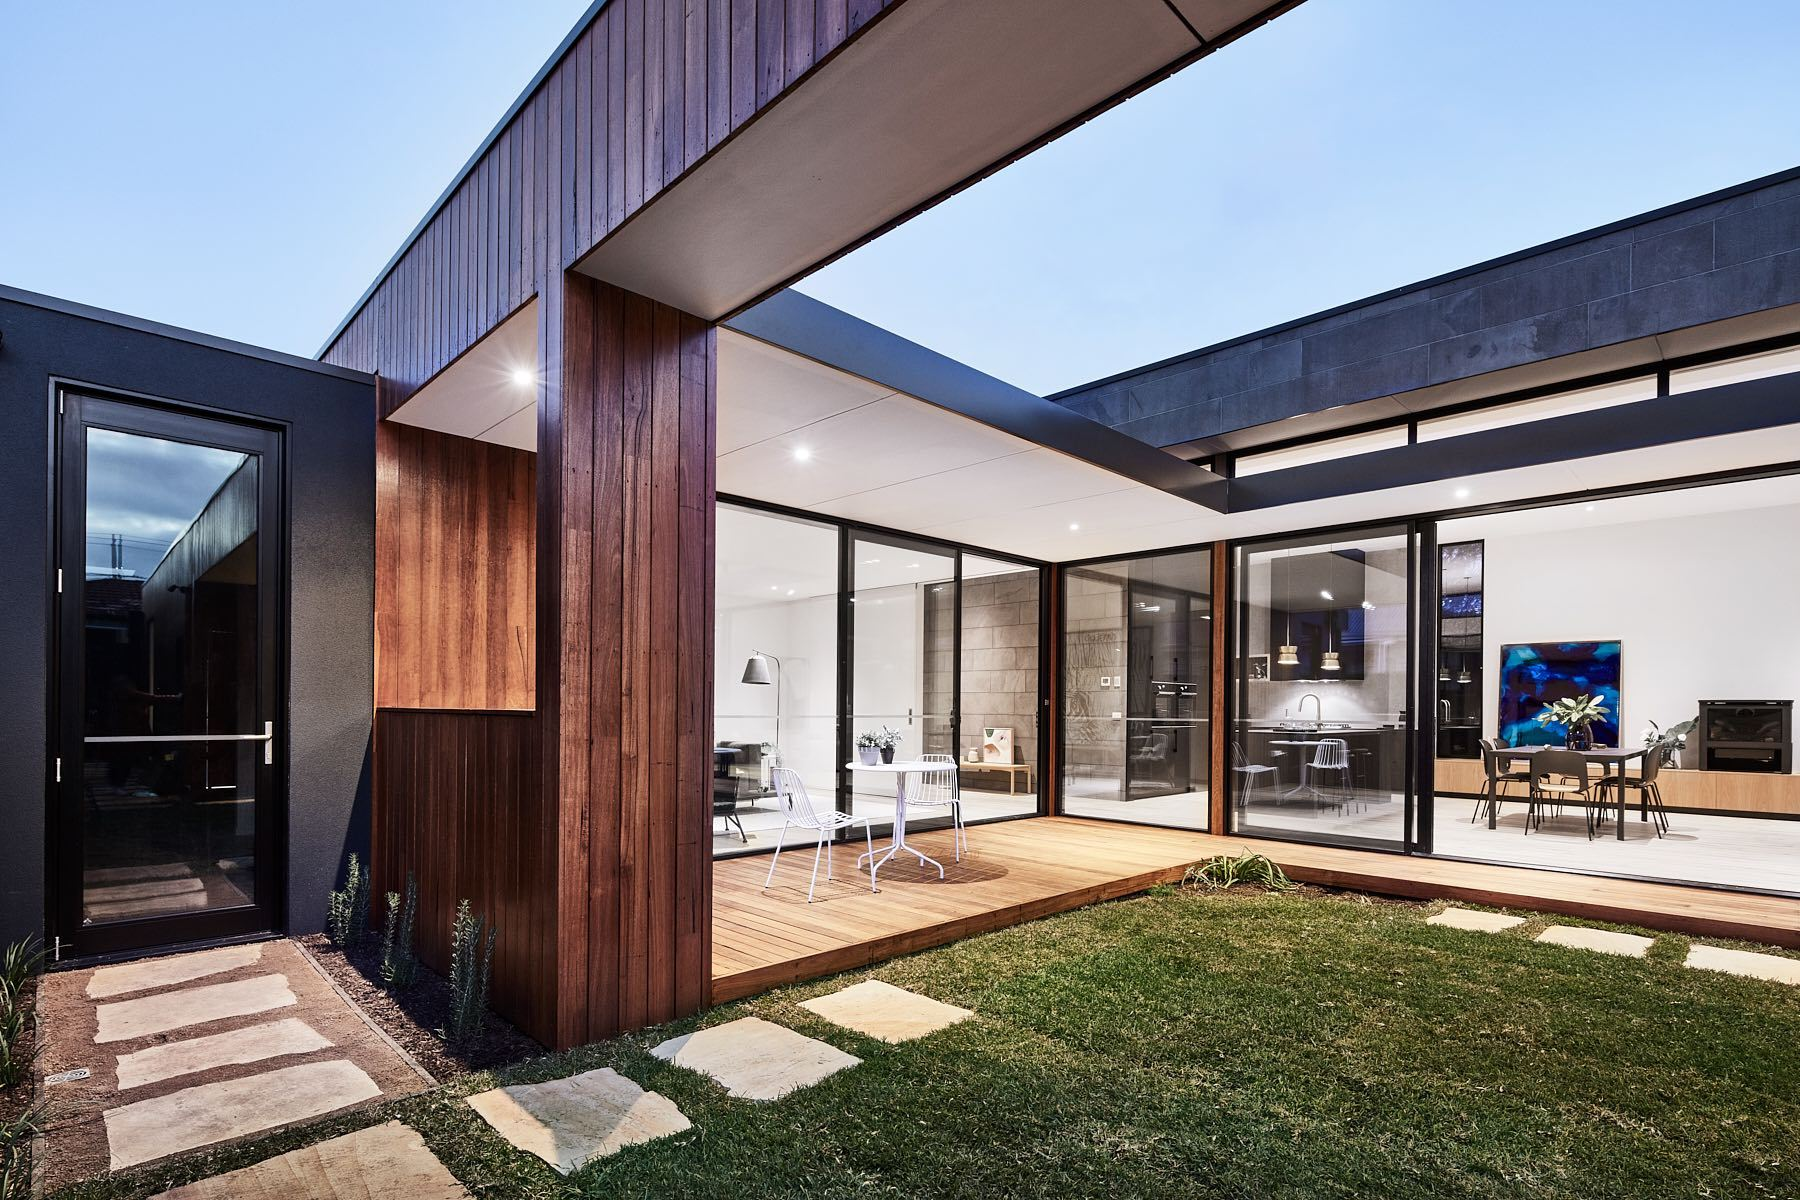 Courtyard Home Designs Gallery Of The Courtyard House Auhaus Architecture 3